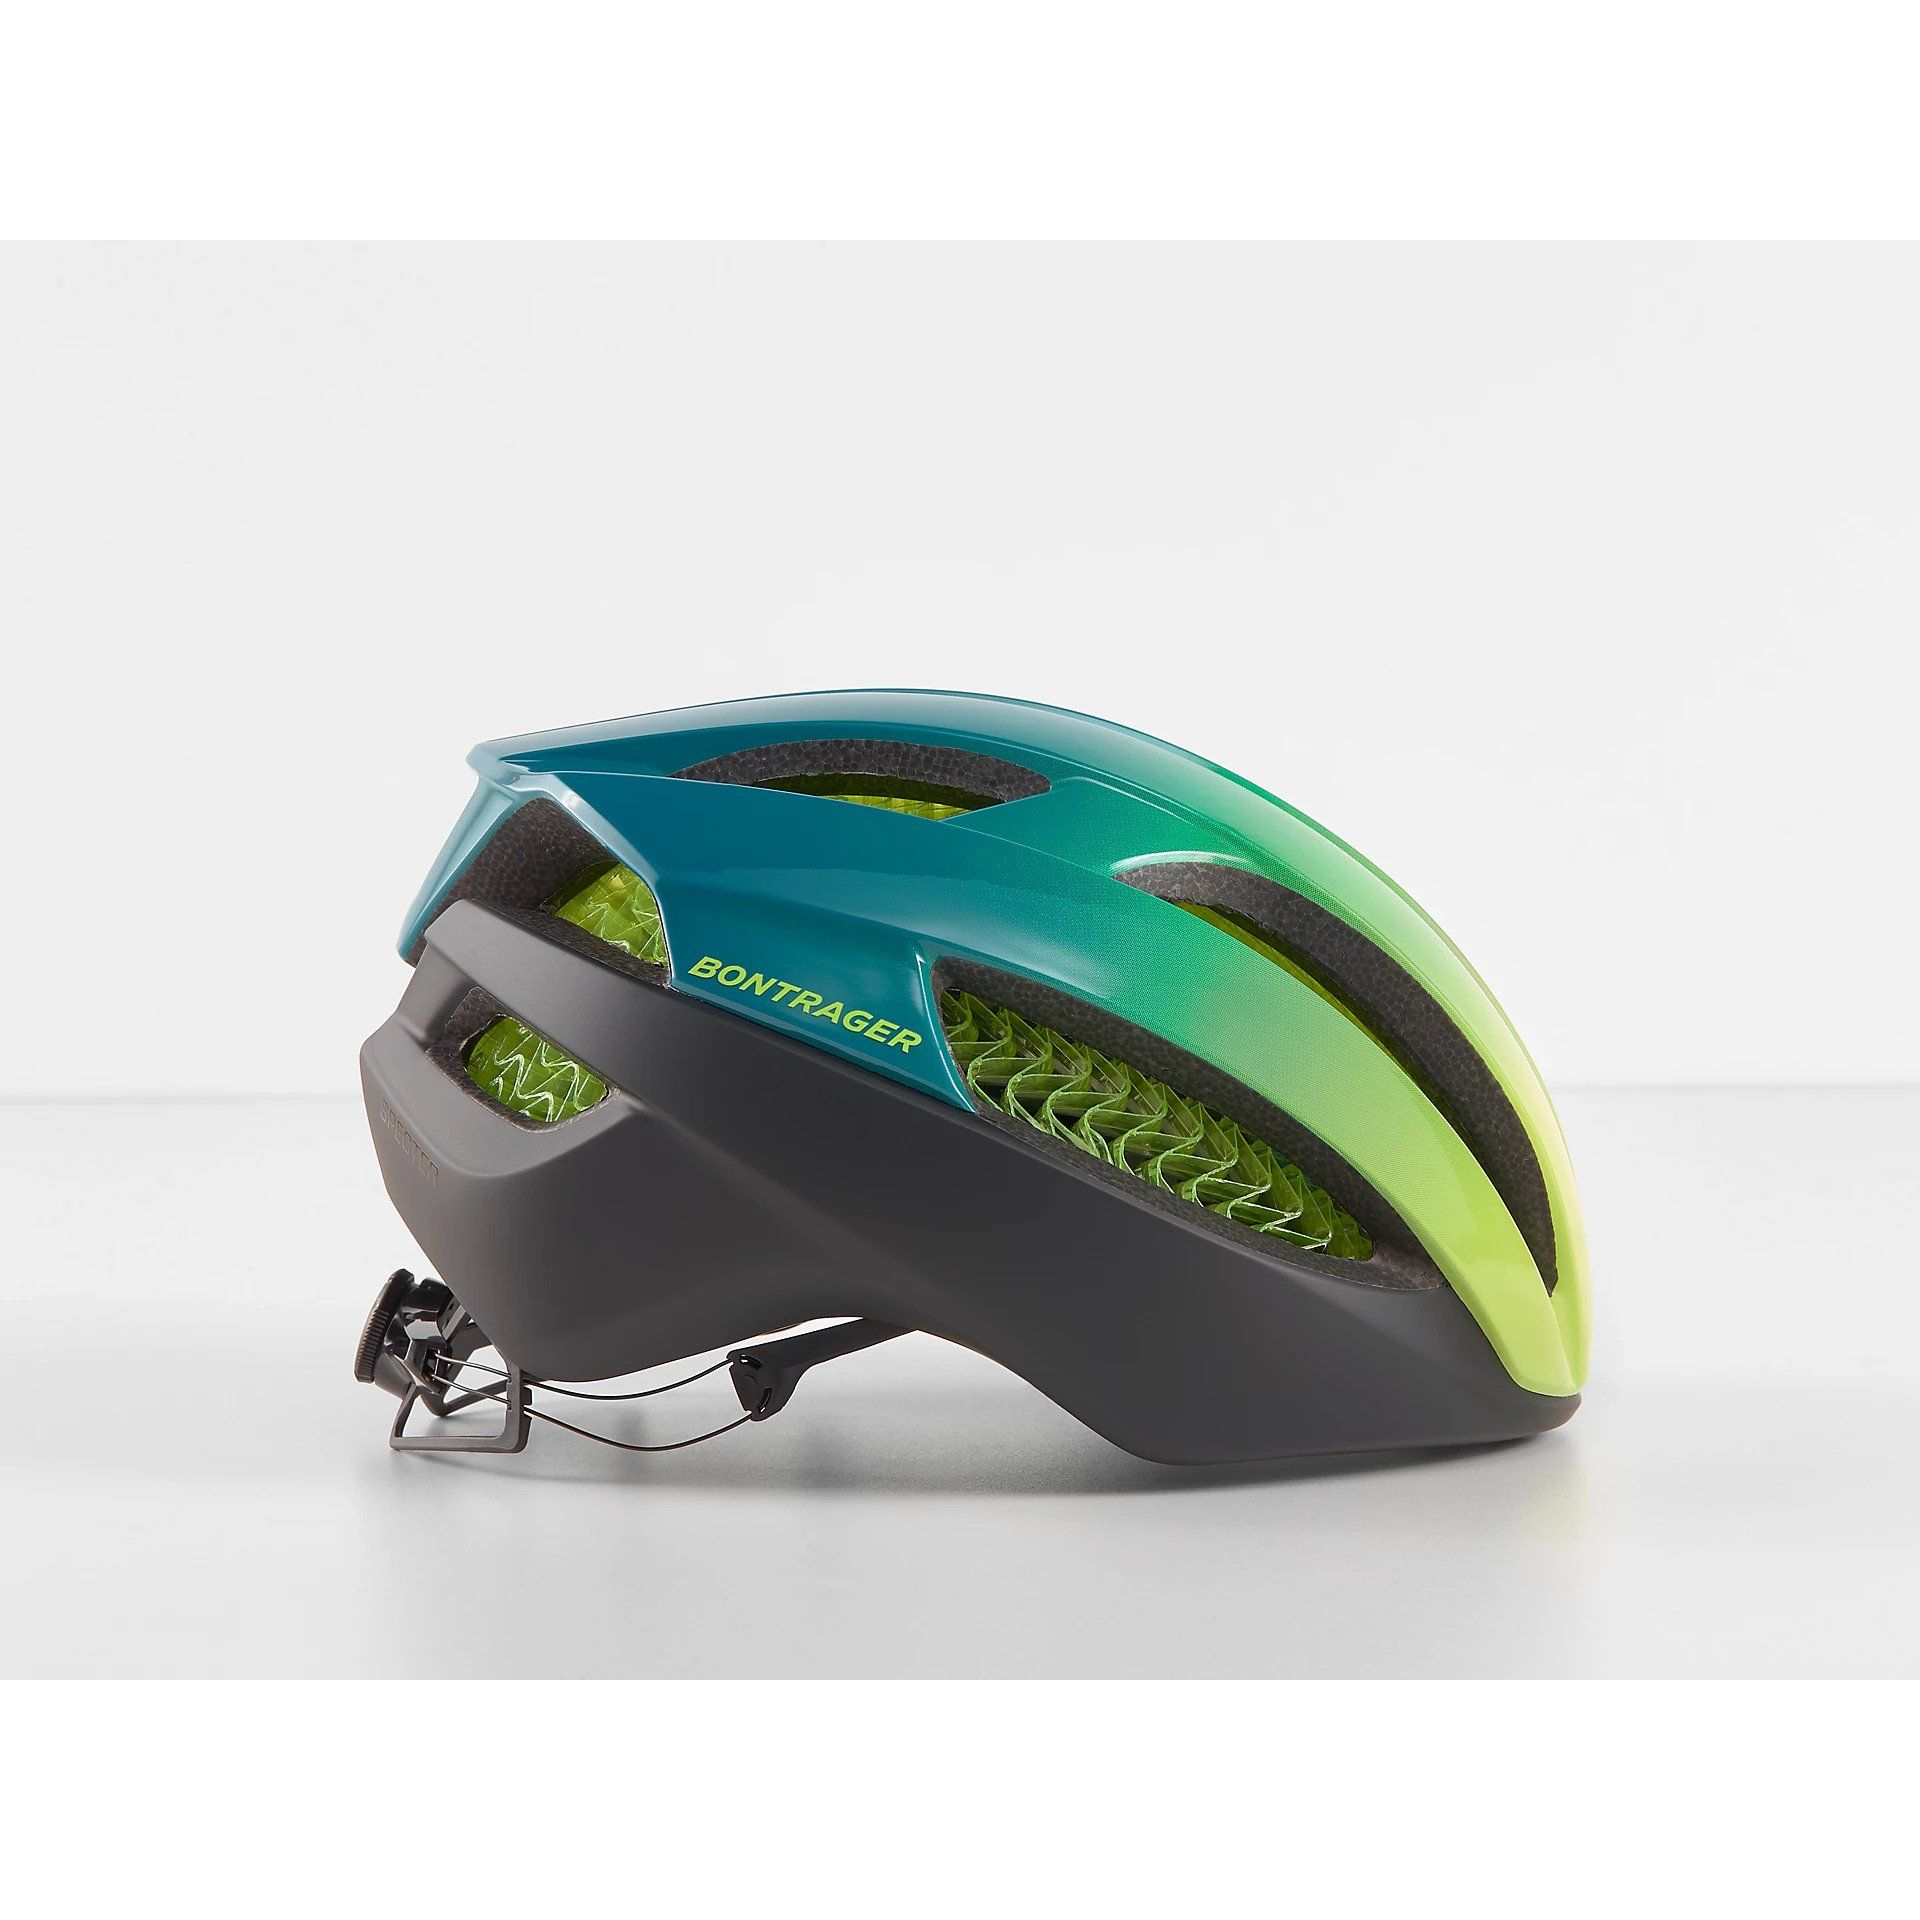 KASK ROWEROWY BONTRAGER SPECTER WAVECEL YELLOW VISIBILITY|TEAL Z BOKU